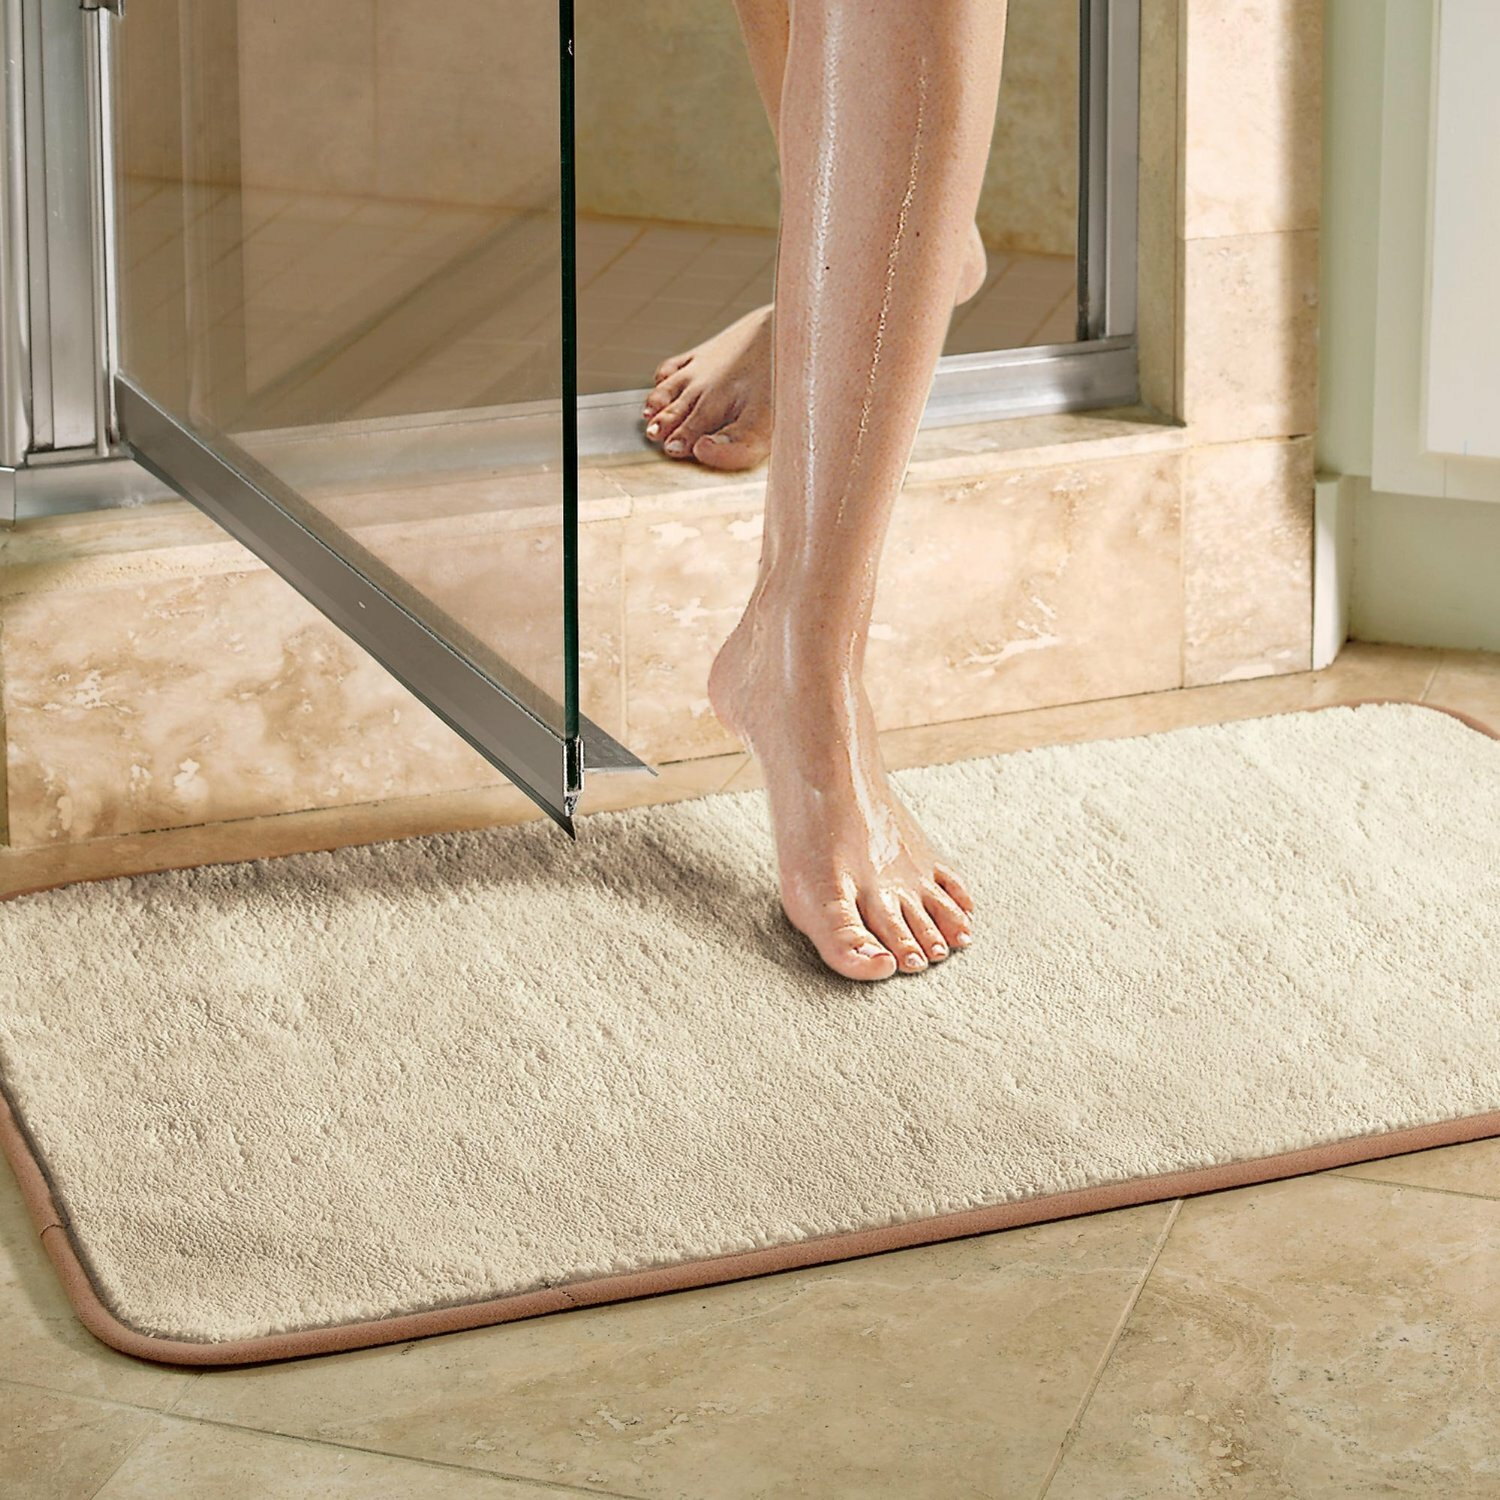 washing bathroom rugs | native carpet